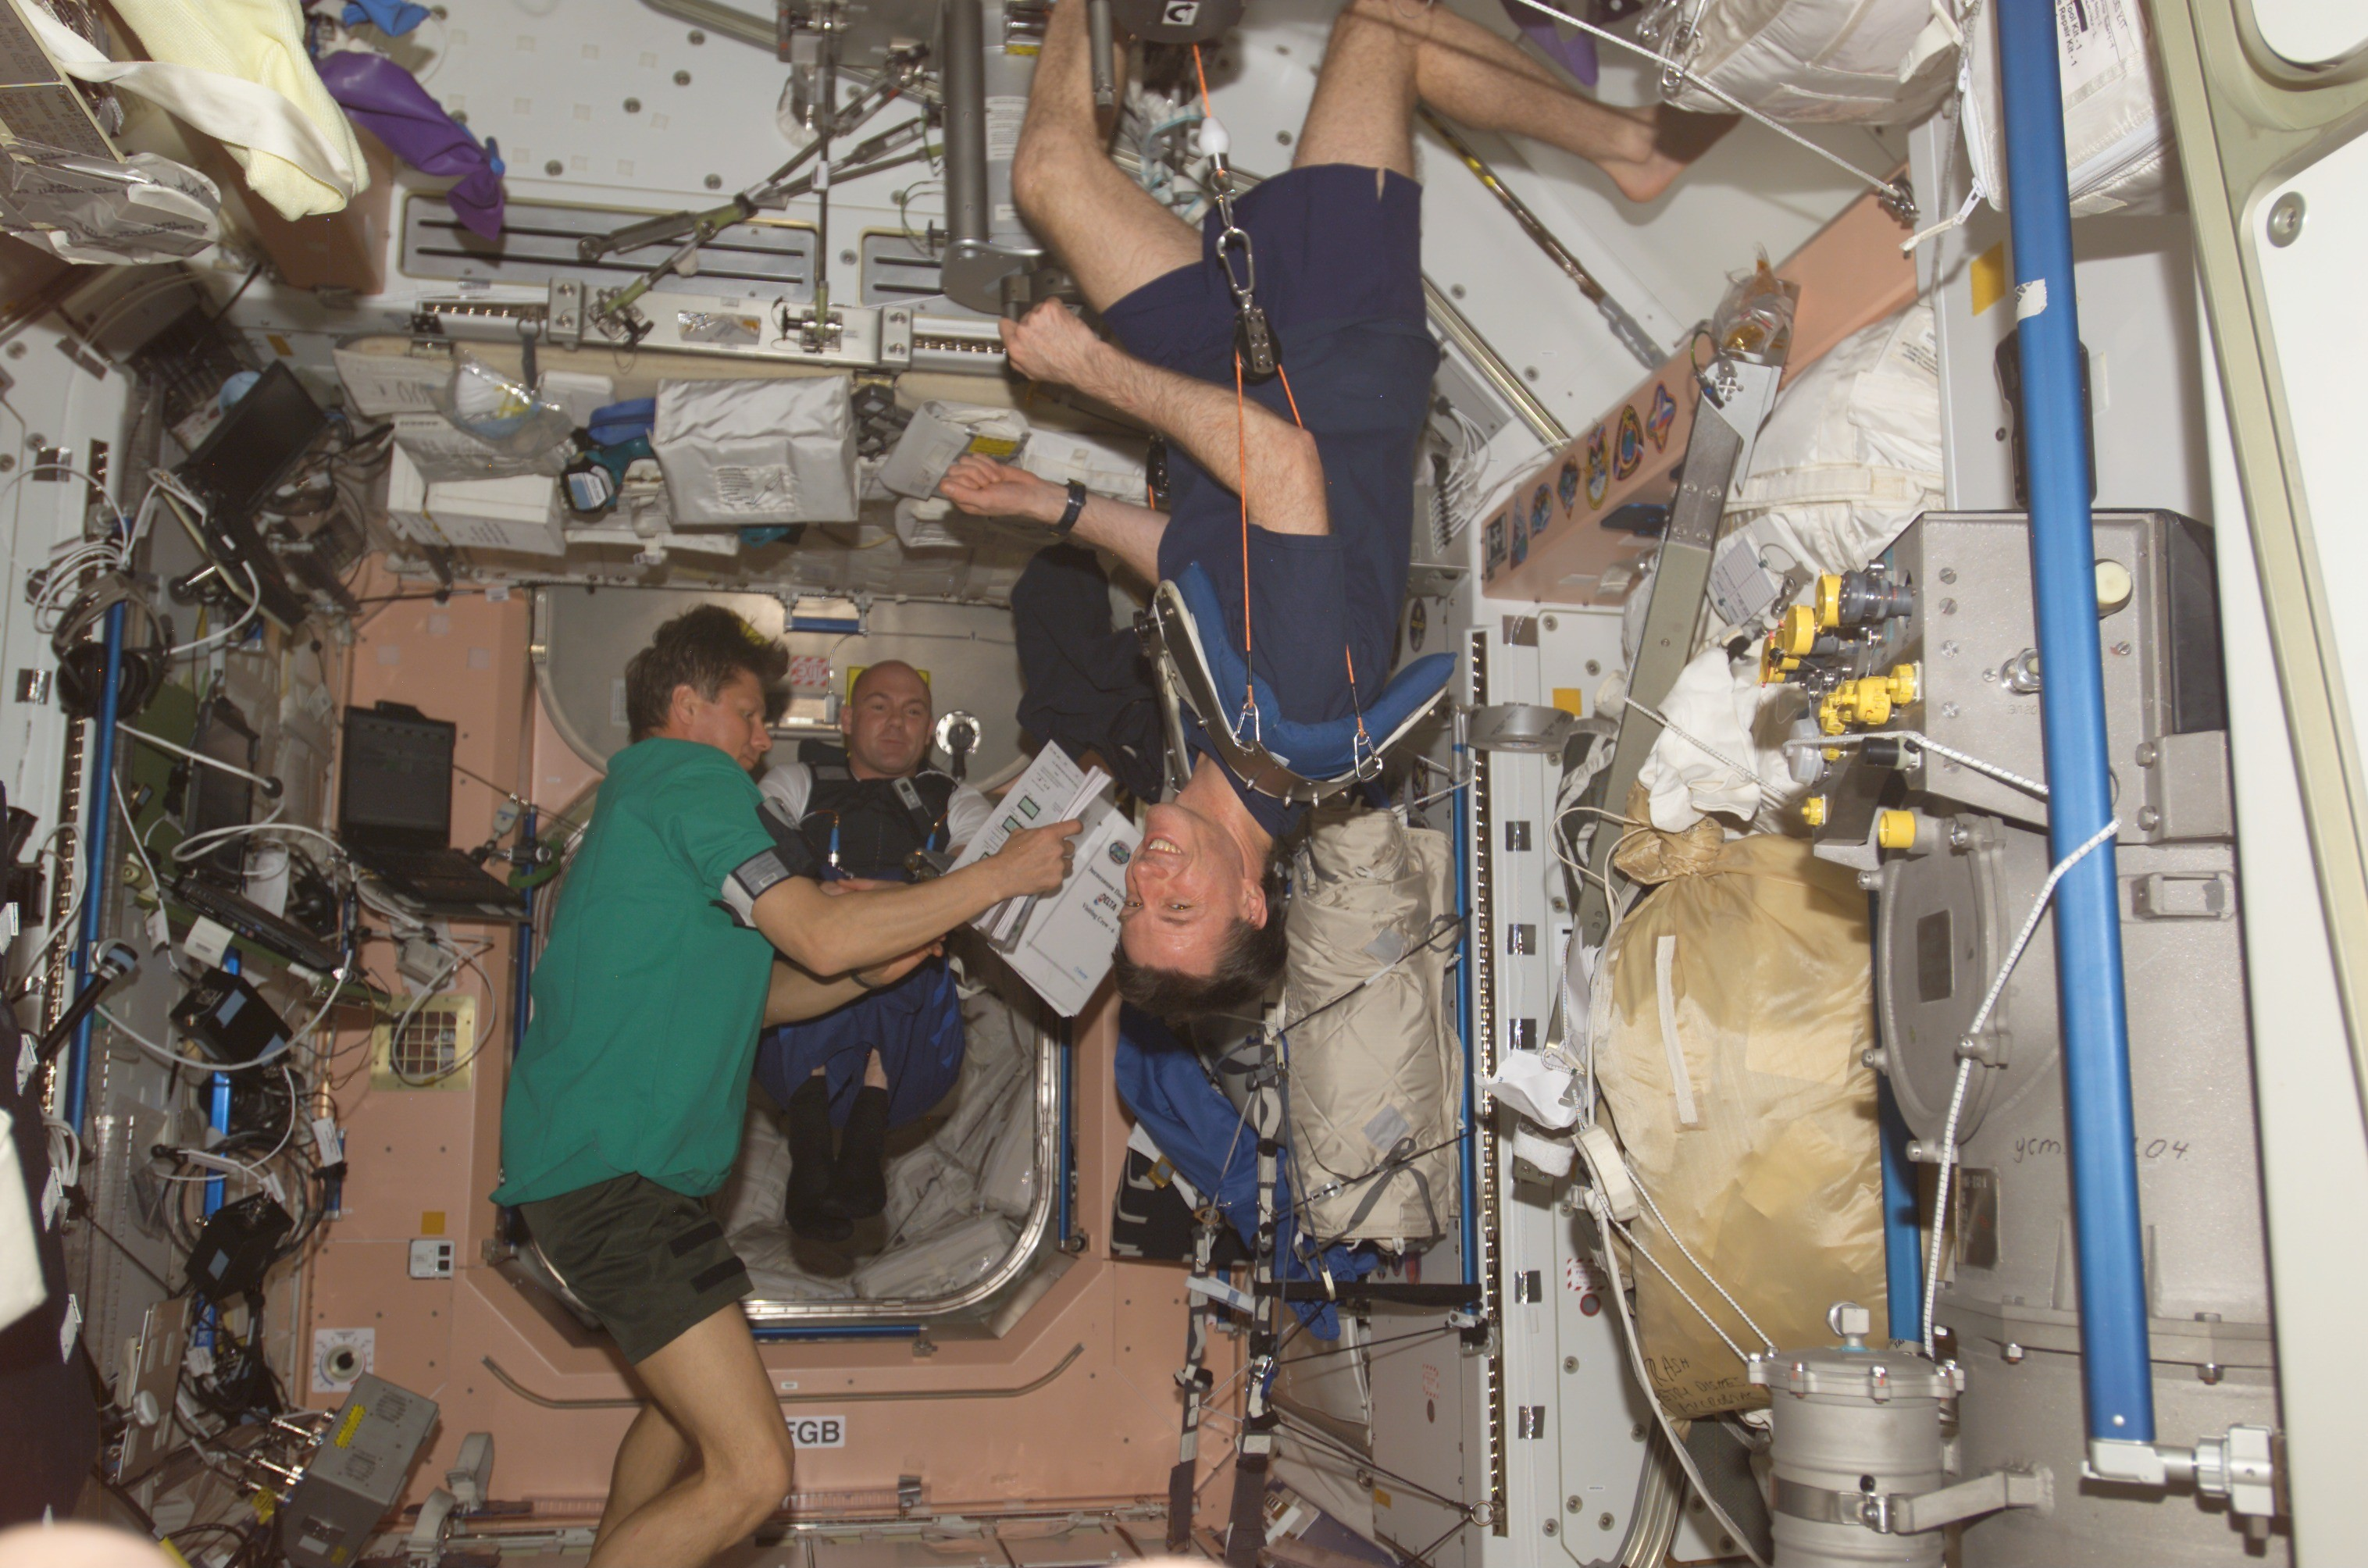 Astronauts on the International Space Station display an example of weightlessness. Michael Foale can be seen exercising in the foreground.